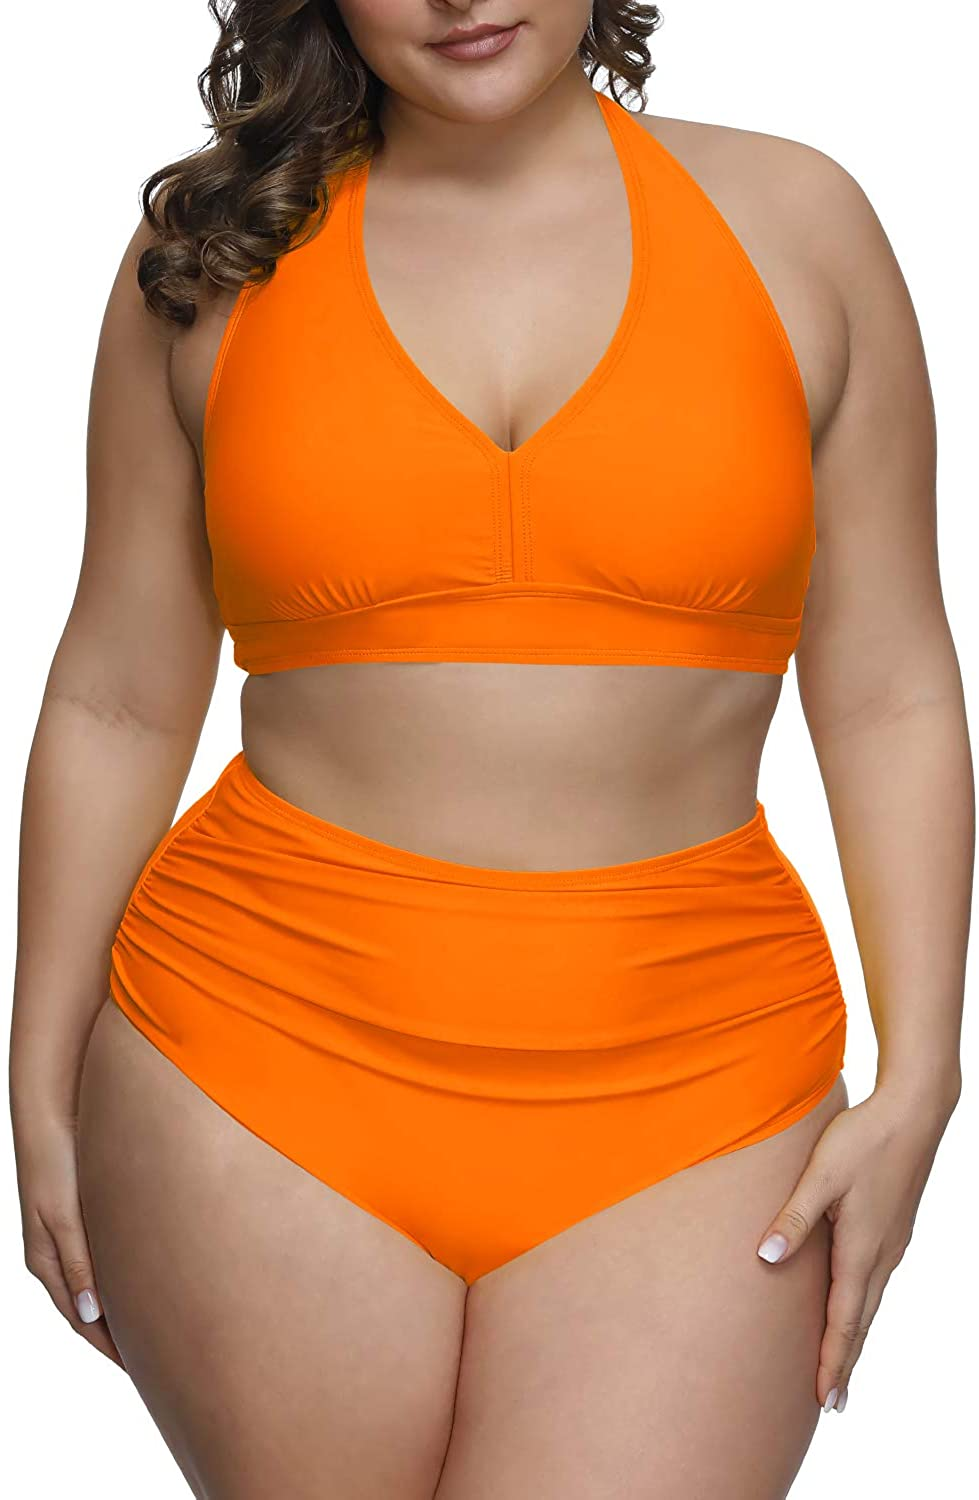 Pink Queen Women's 2 Piece Plus Size High Waisted Swimwear Swimsuits Ruched Tummy Control Bikini Set